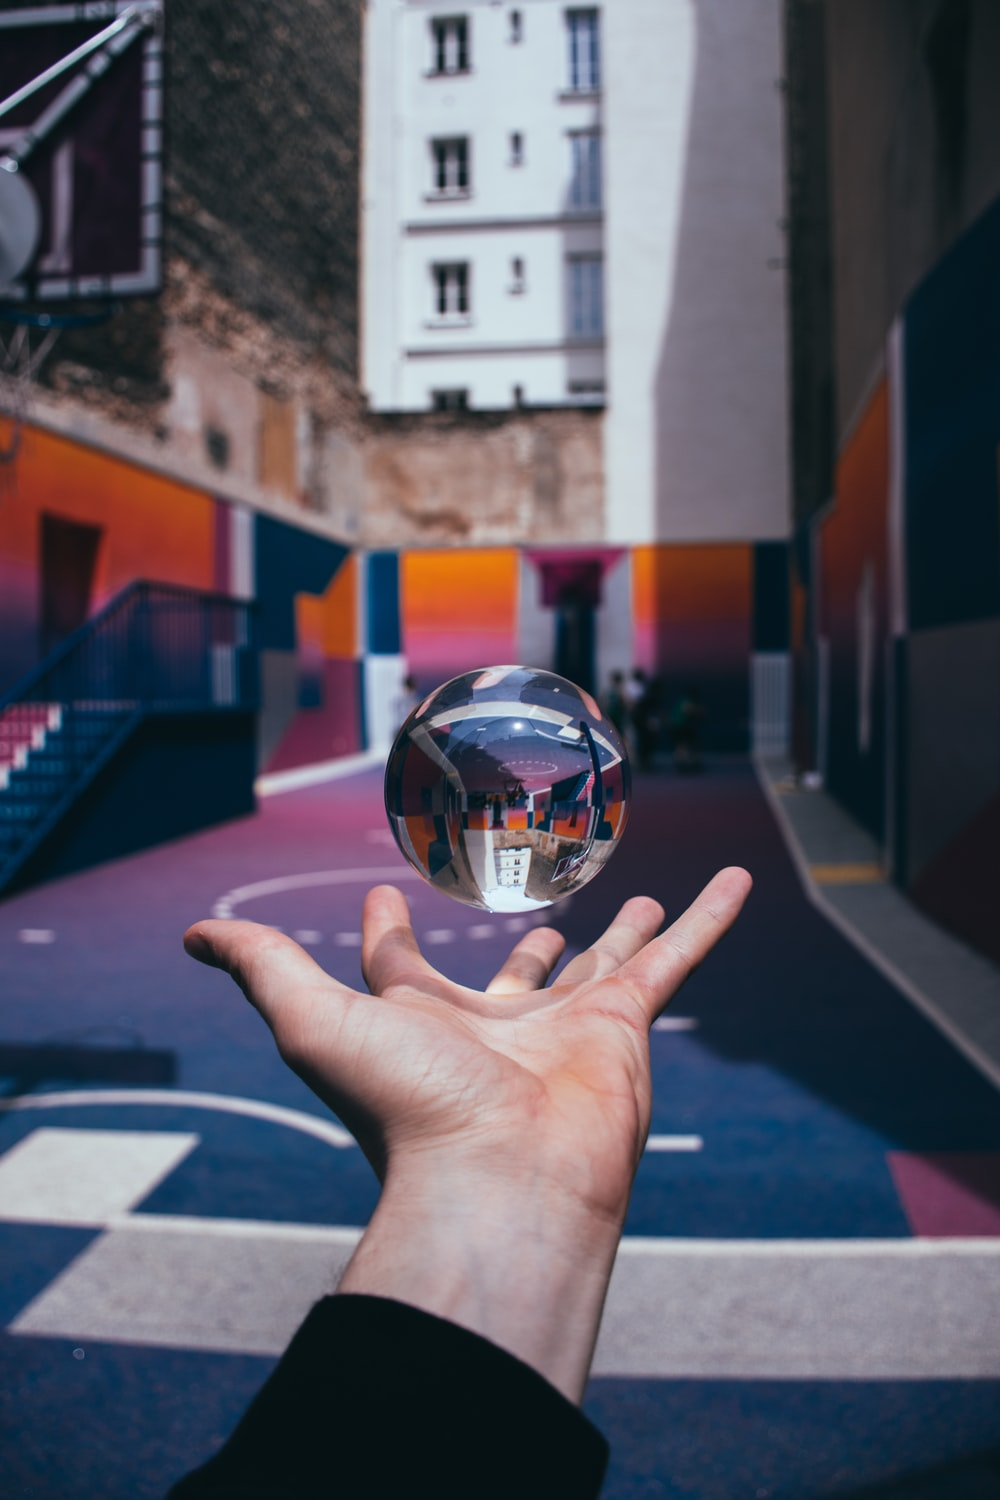 glass ball elevating on person's palm